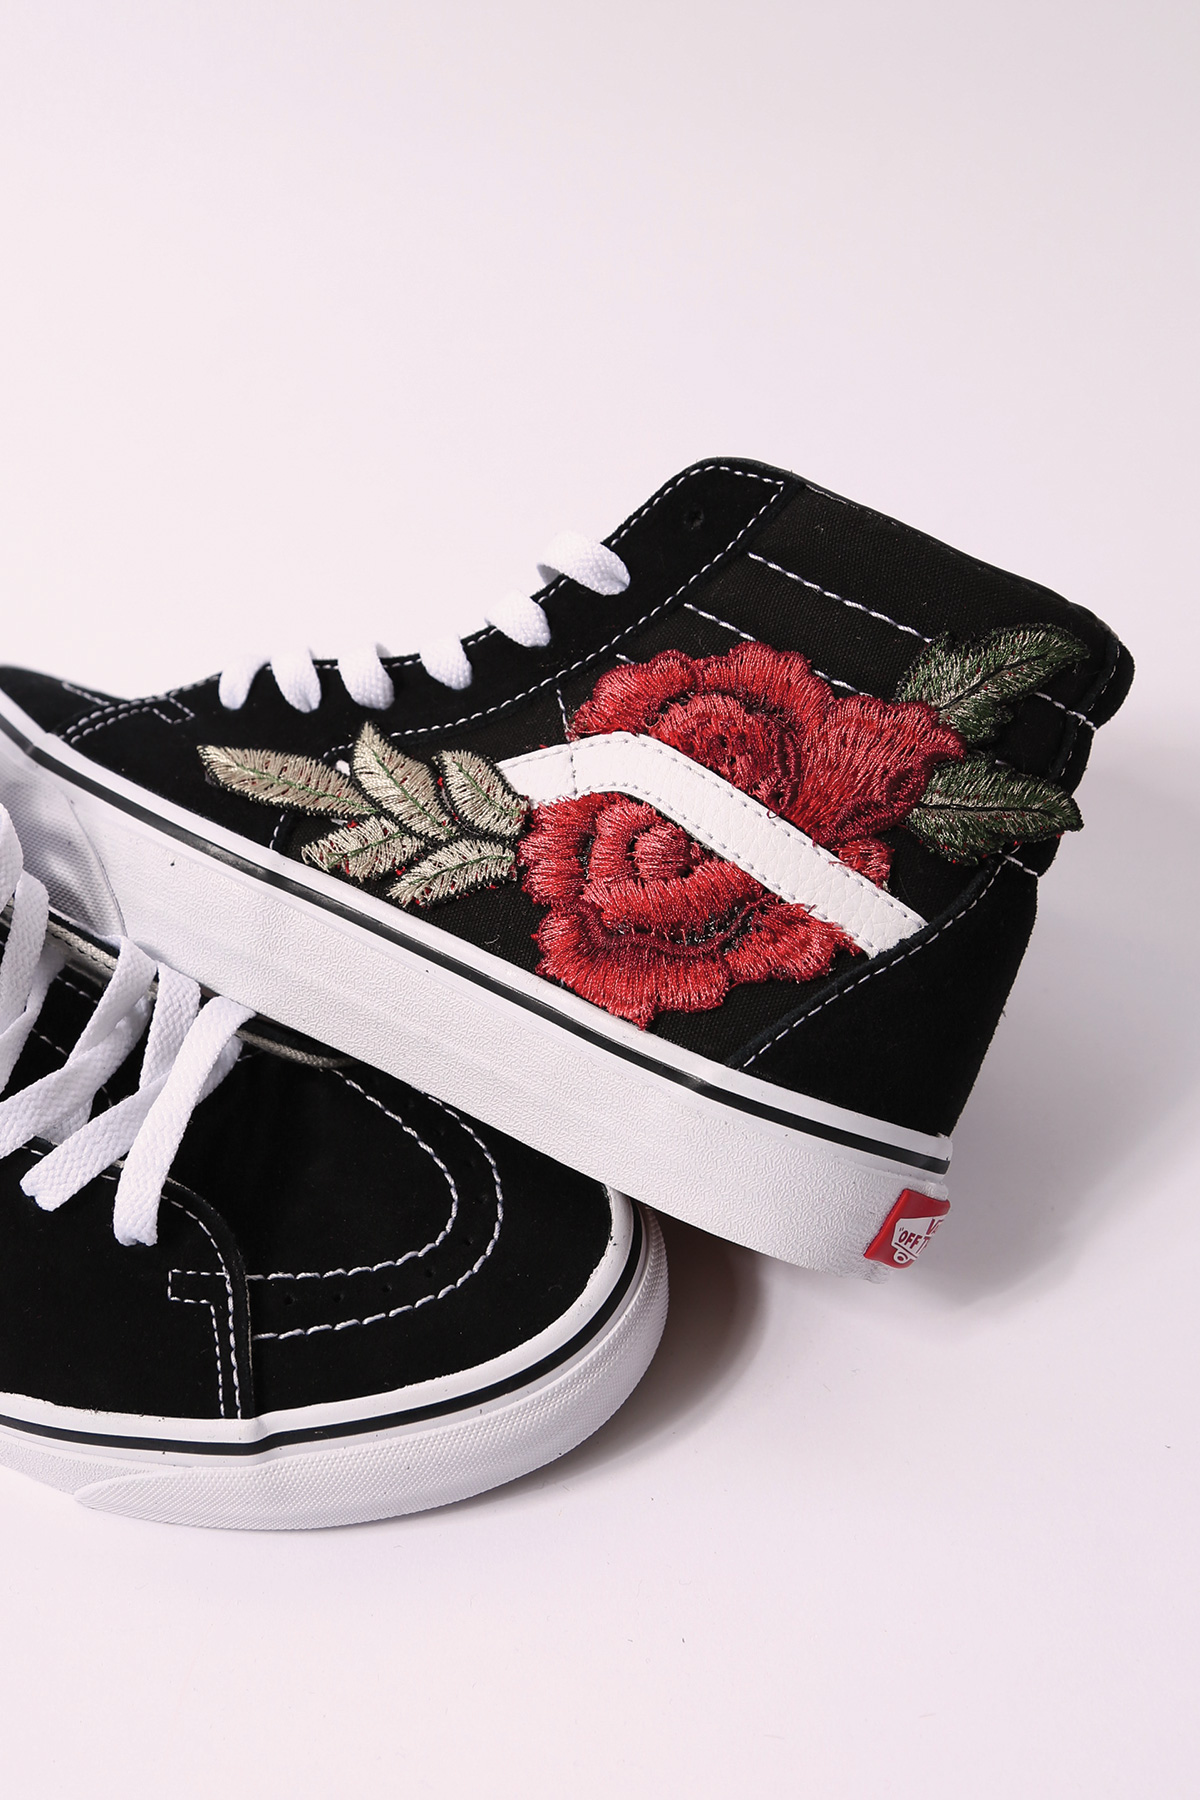 custom made high top vans